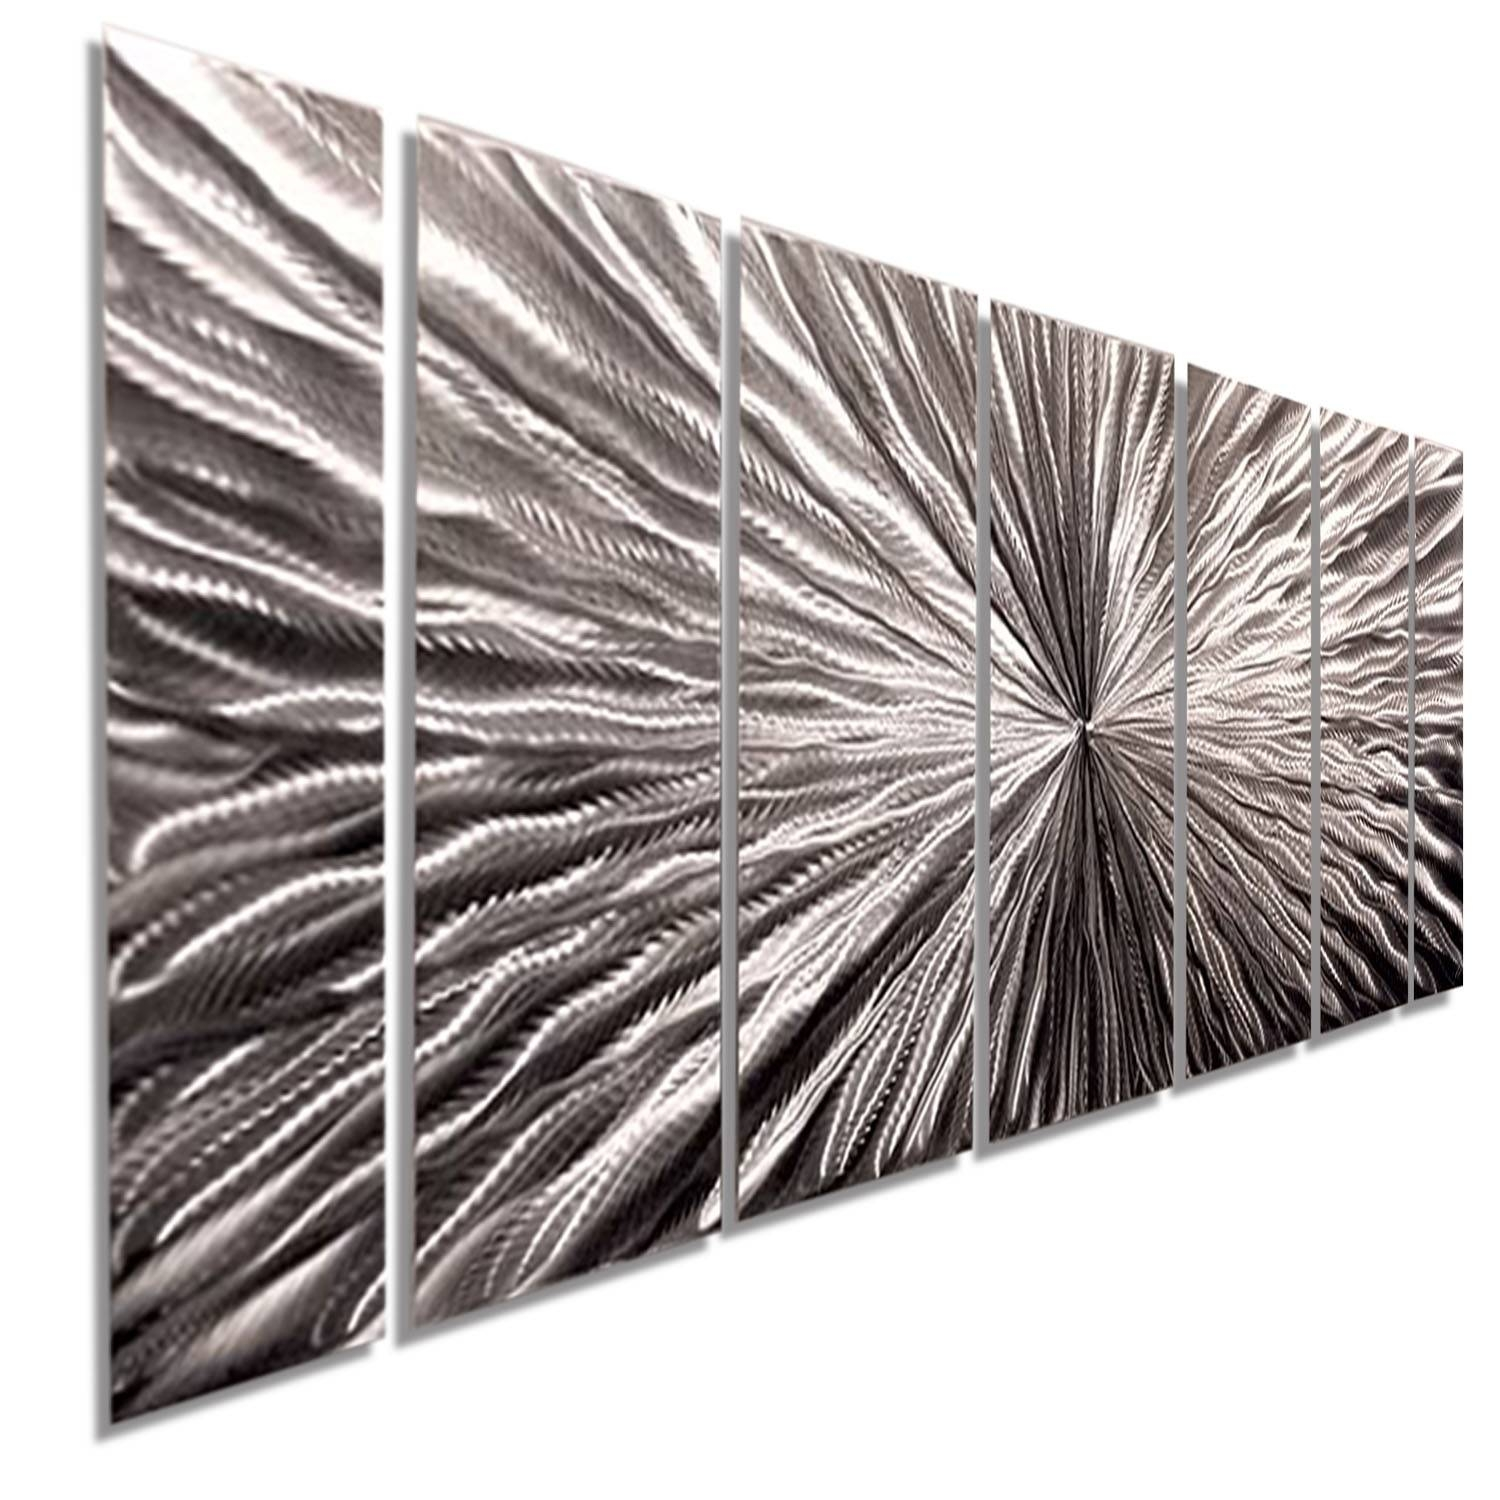 Radiant Velocity – Silver Contemporary Metal Wall Artjon Allen With Regard To Recent Silver Metal Wall Art (View 11 of 20)